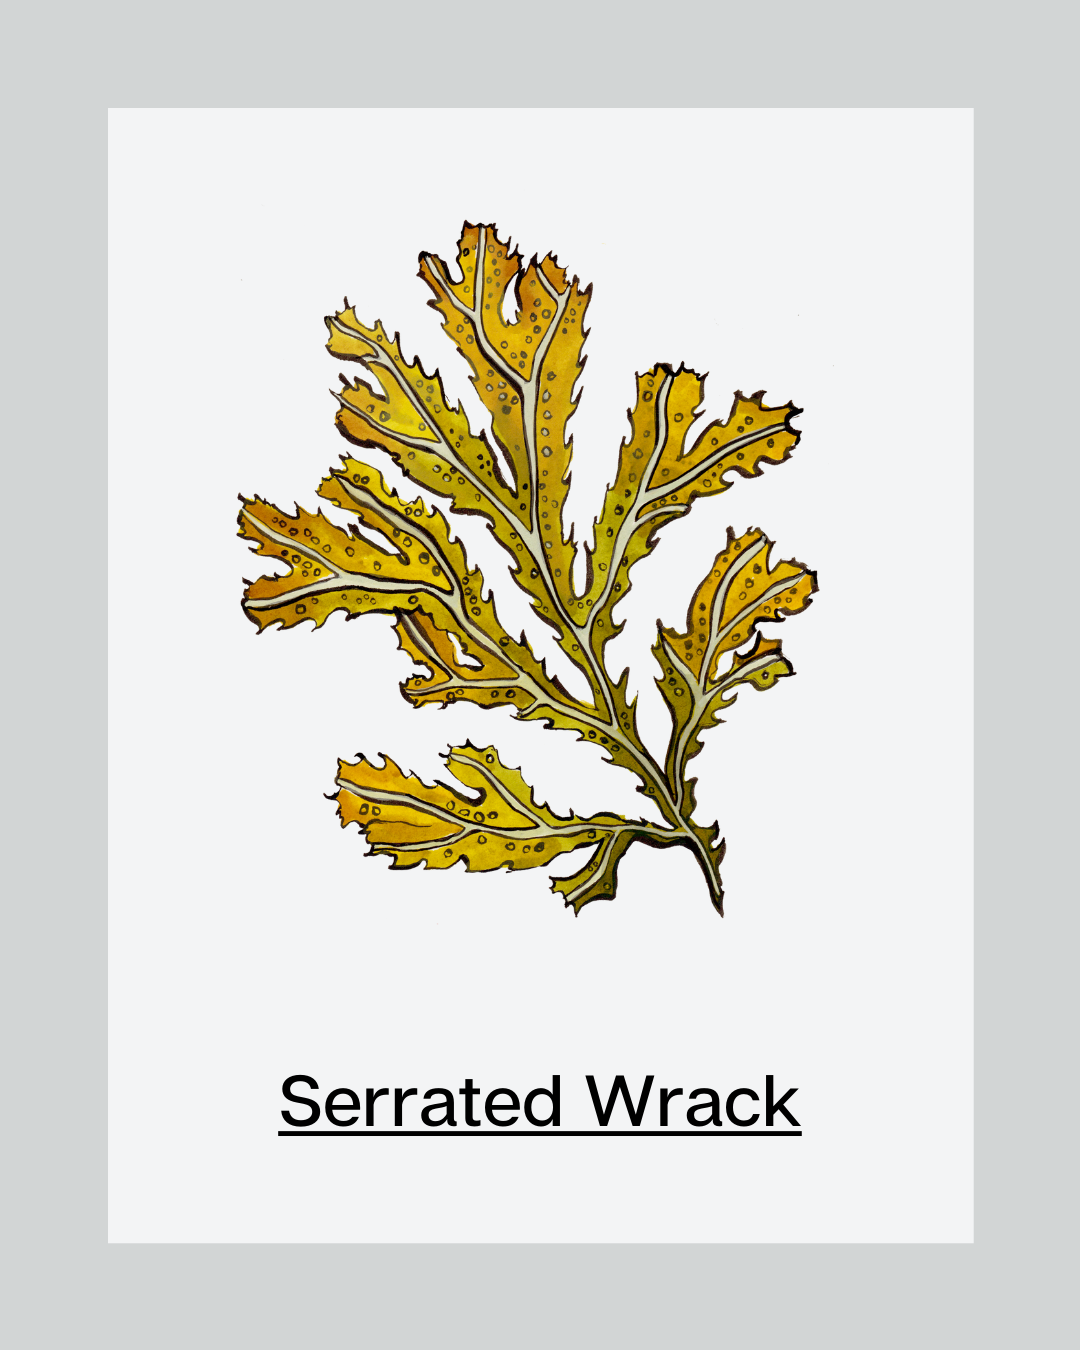 Ingredient of the Month: Serrated Wrack